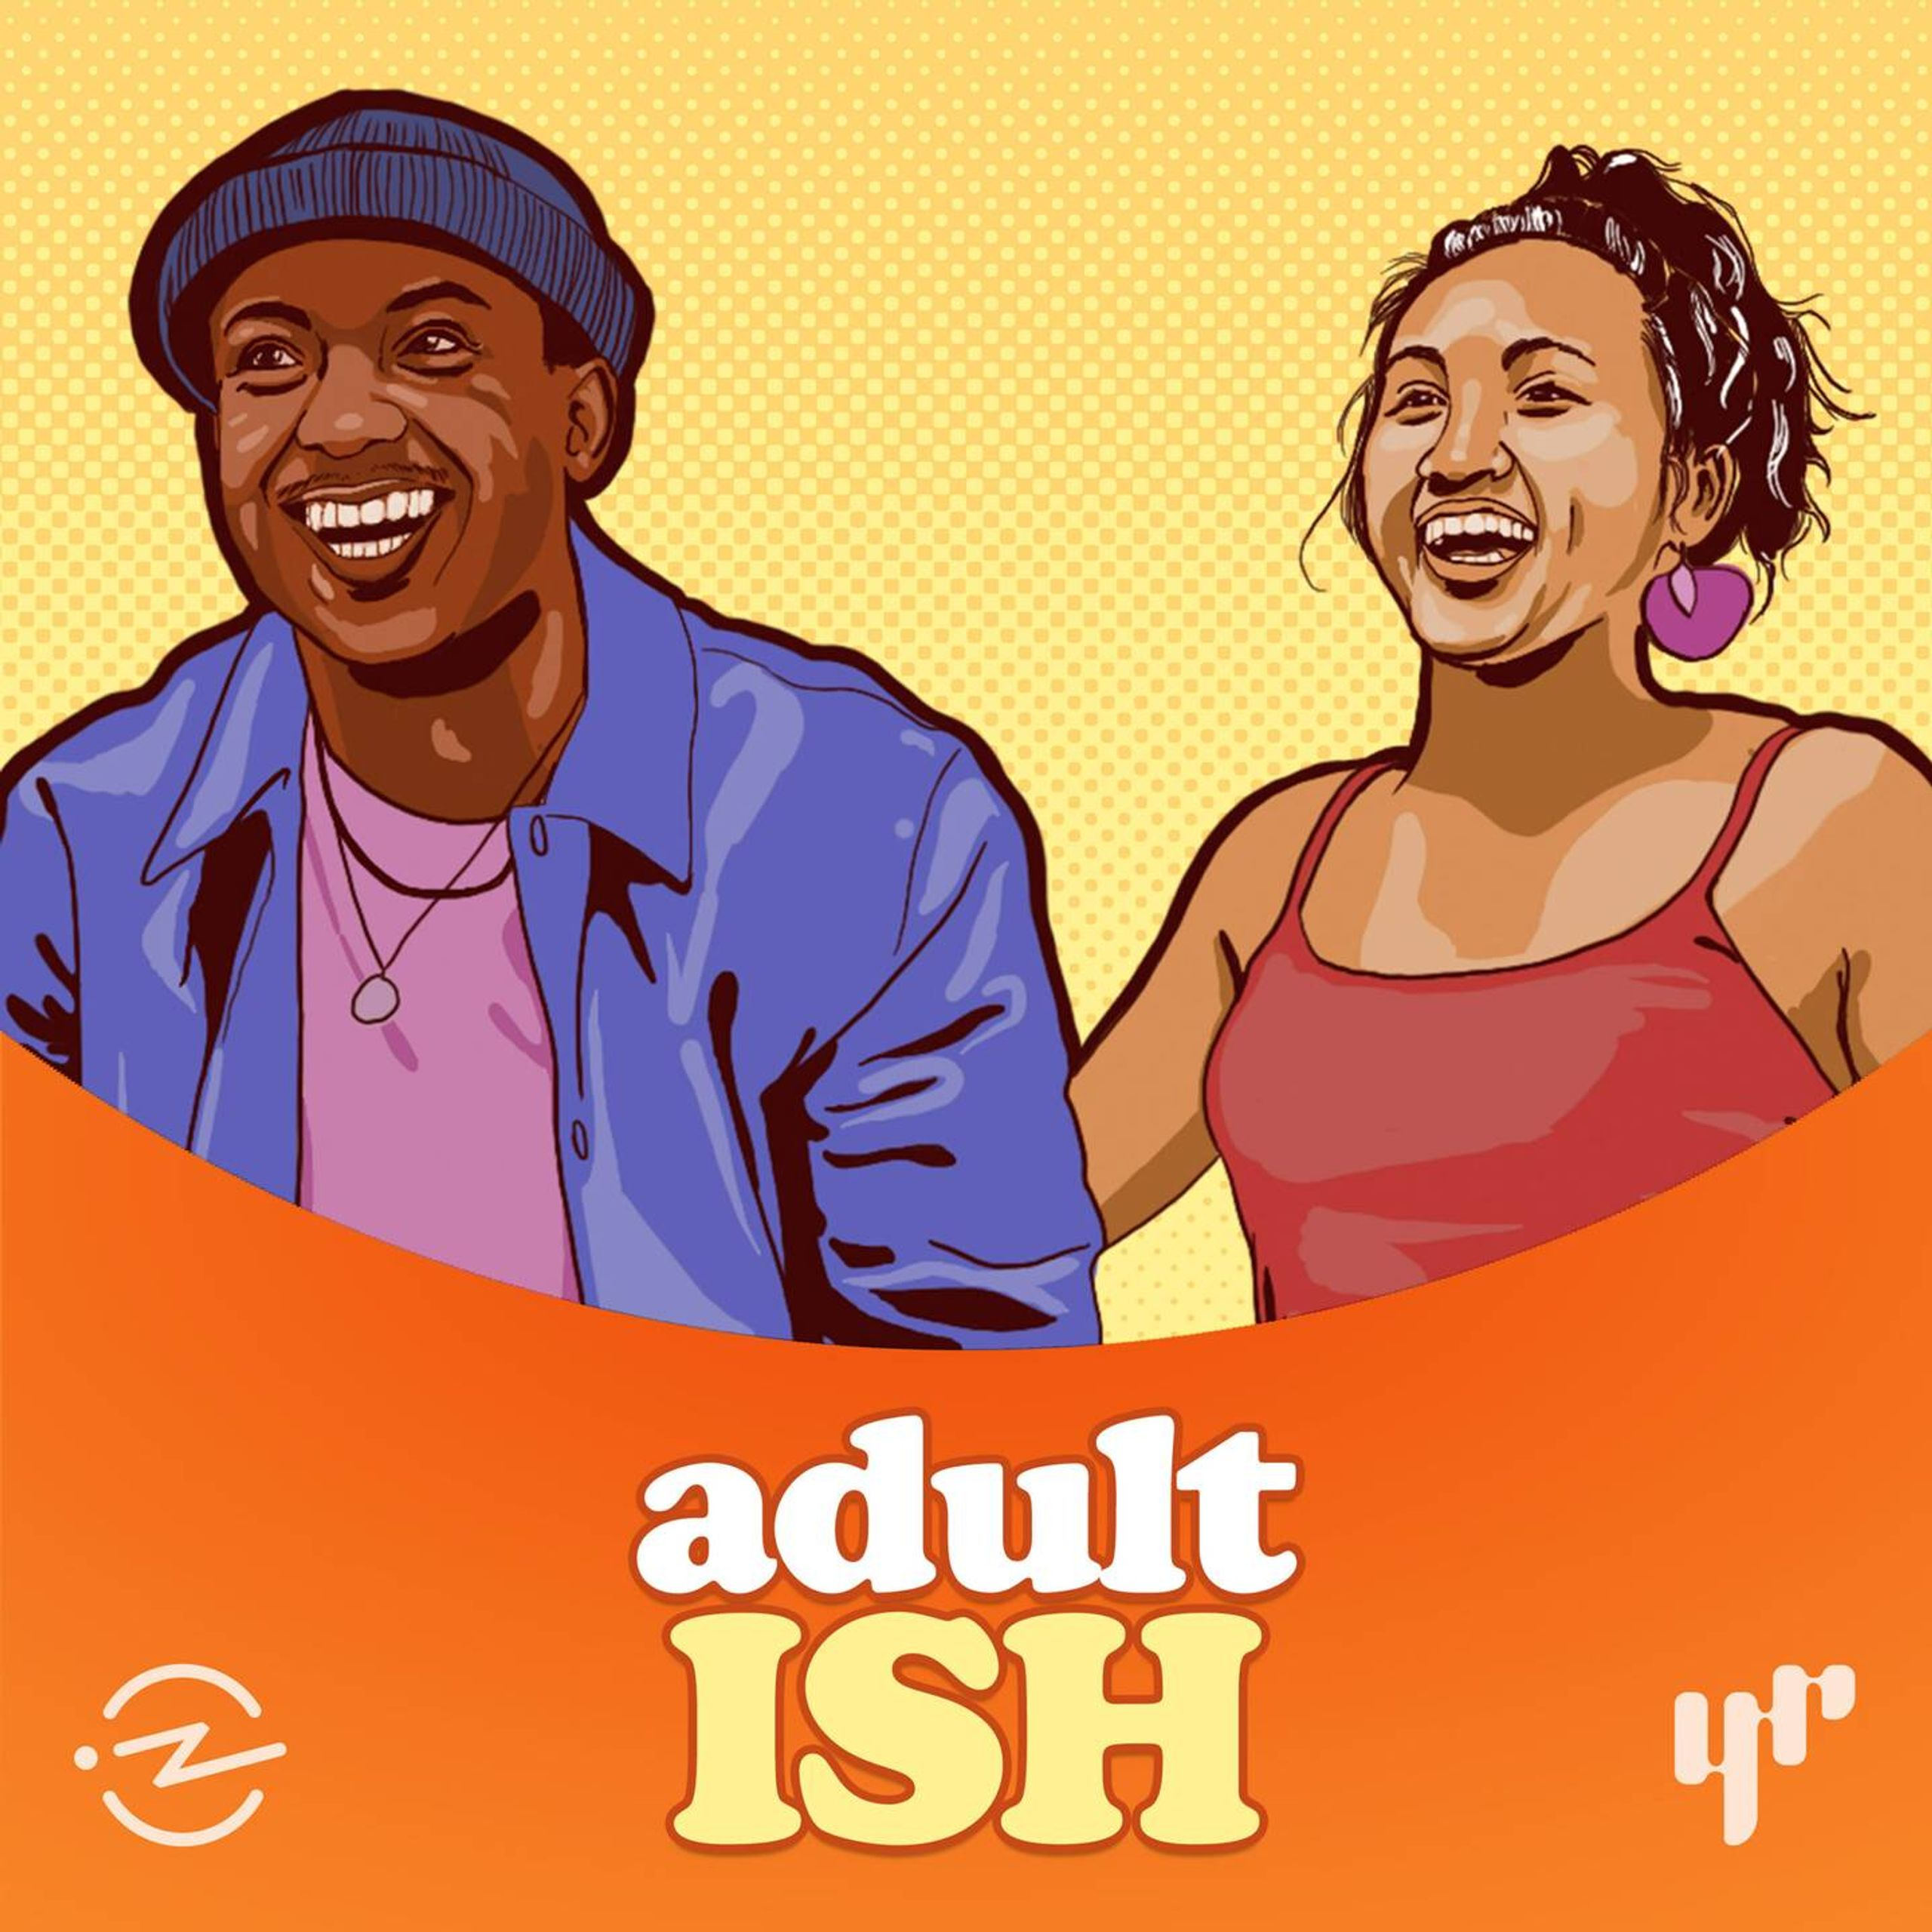 Logo for the Adult ISH podcast, featuring two young people smiling, lessons in adulting, adult ish, Rewire